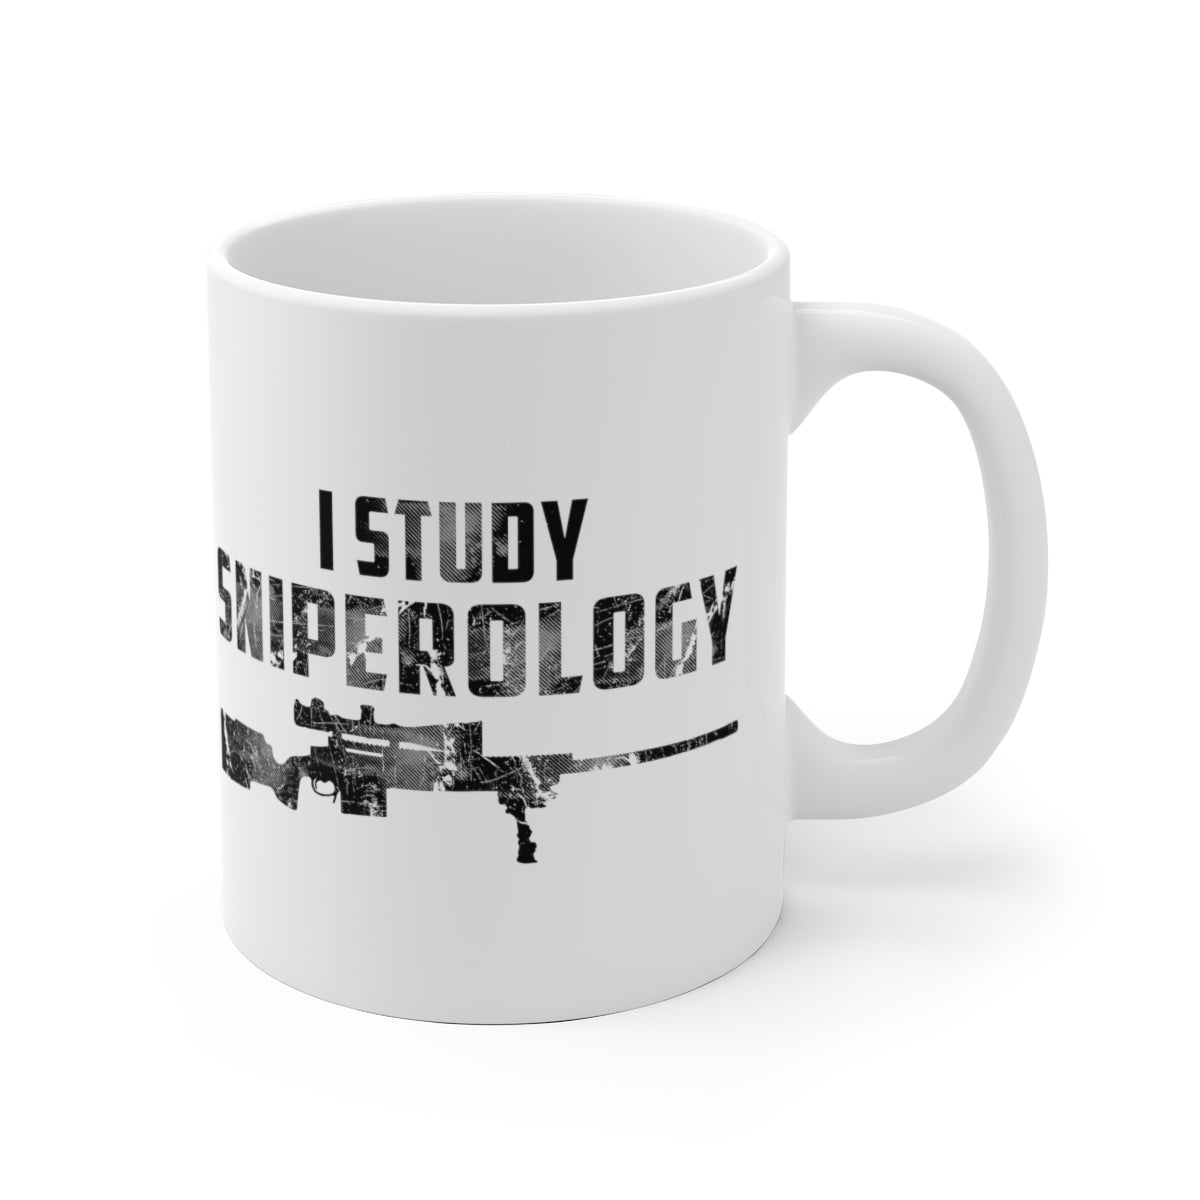 I Study Sniperology - White Ceramic Mug - Sniperology